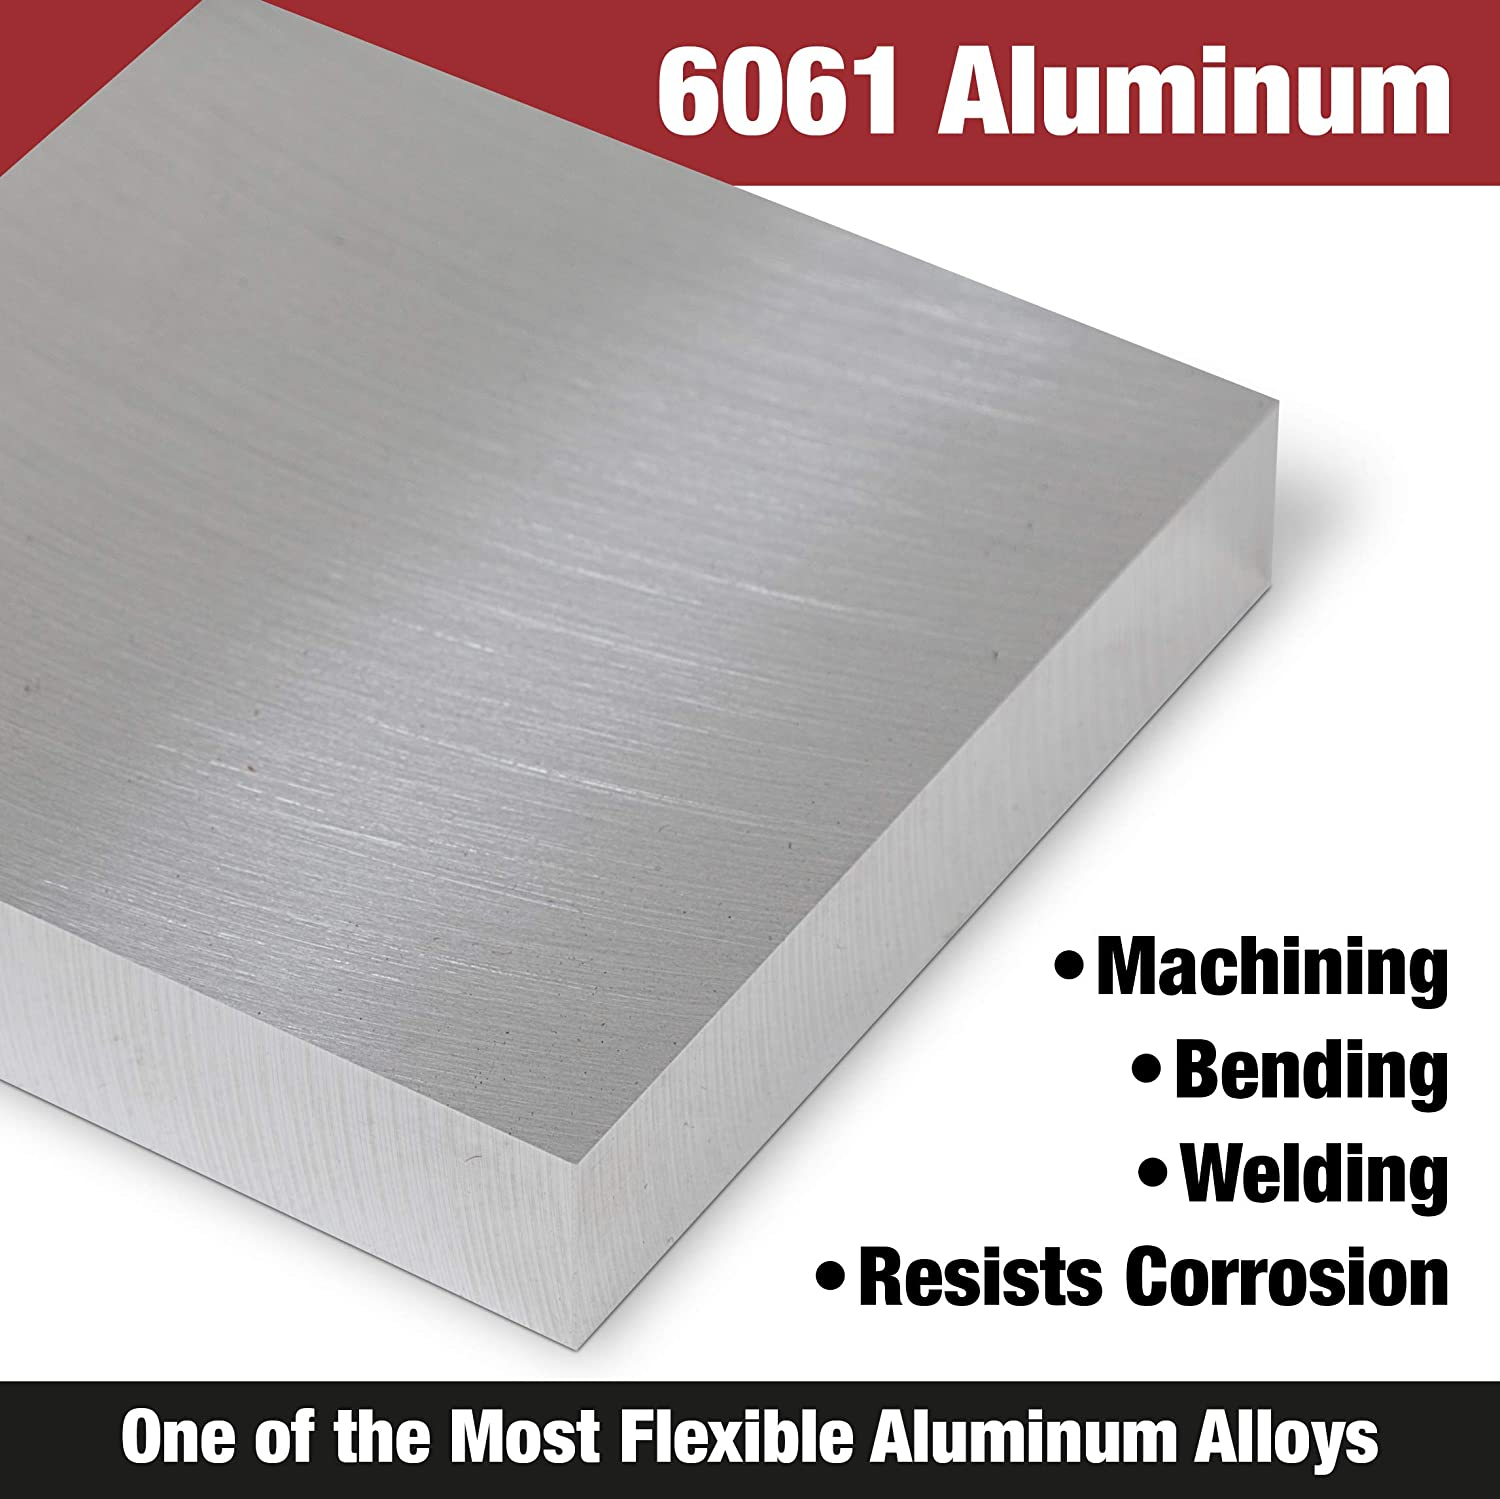 Precision Ground and Milled Sheet .190 X 2.000 X 12.000 6061-T6 Aluminum